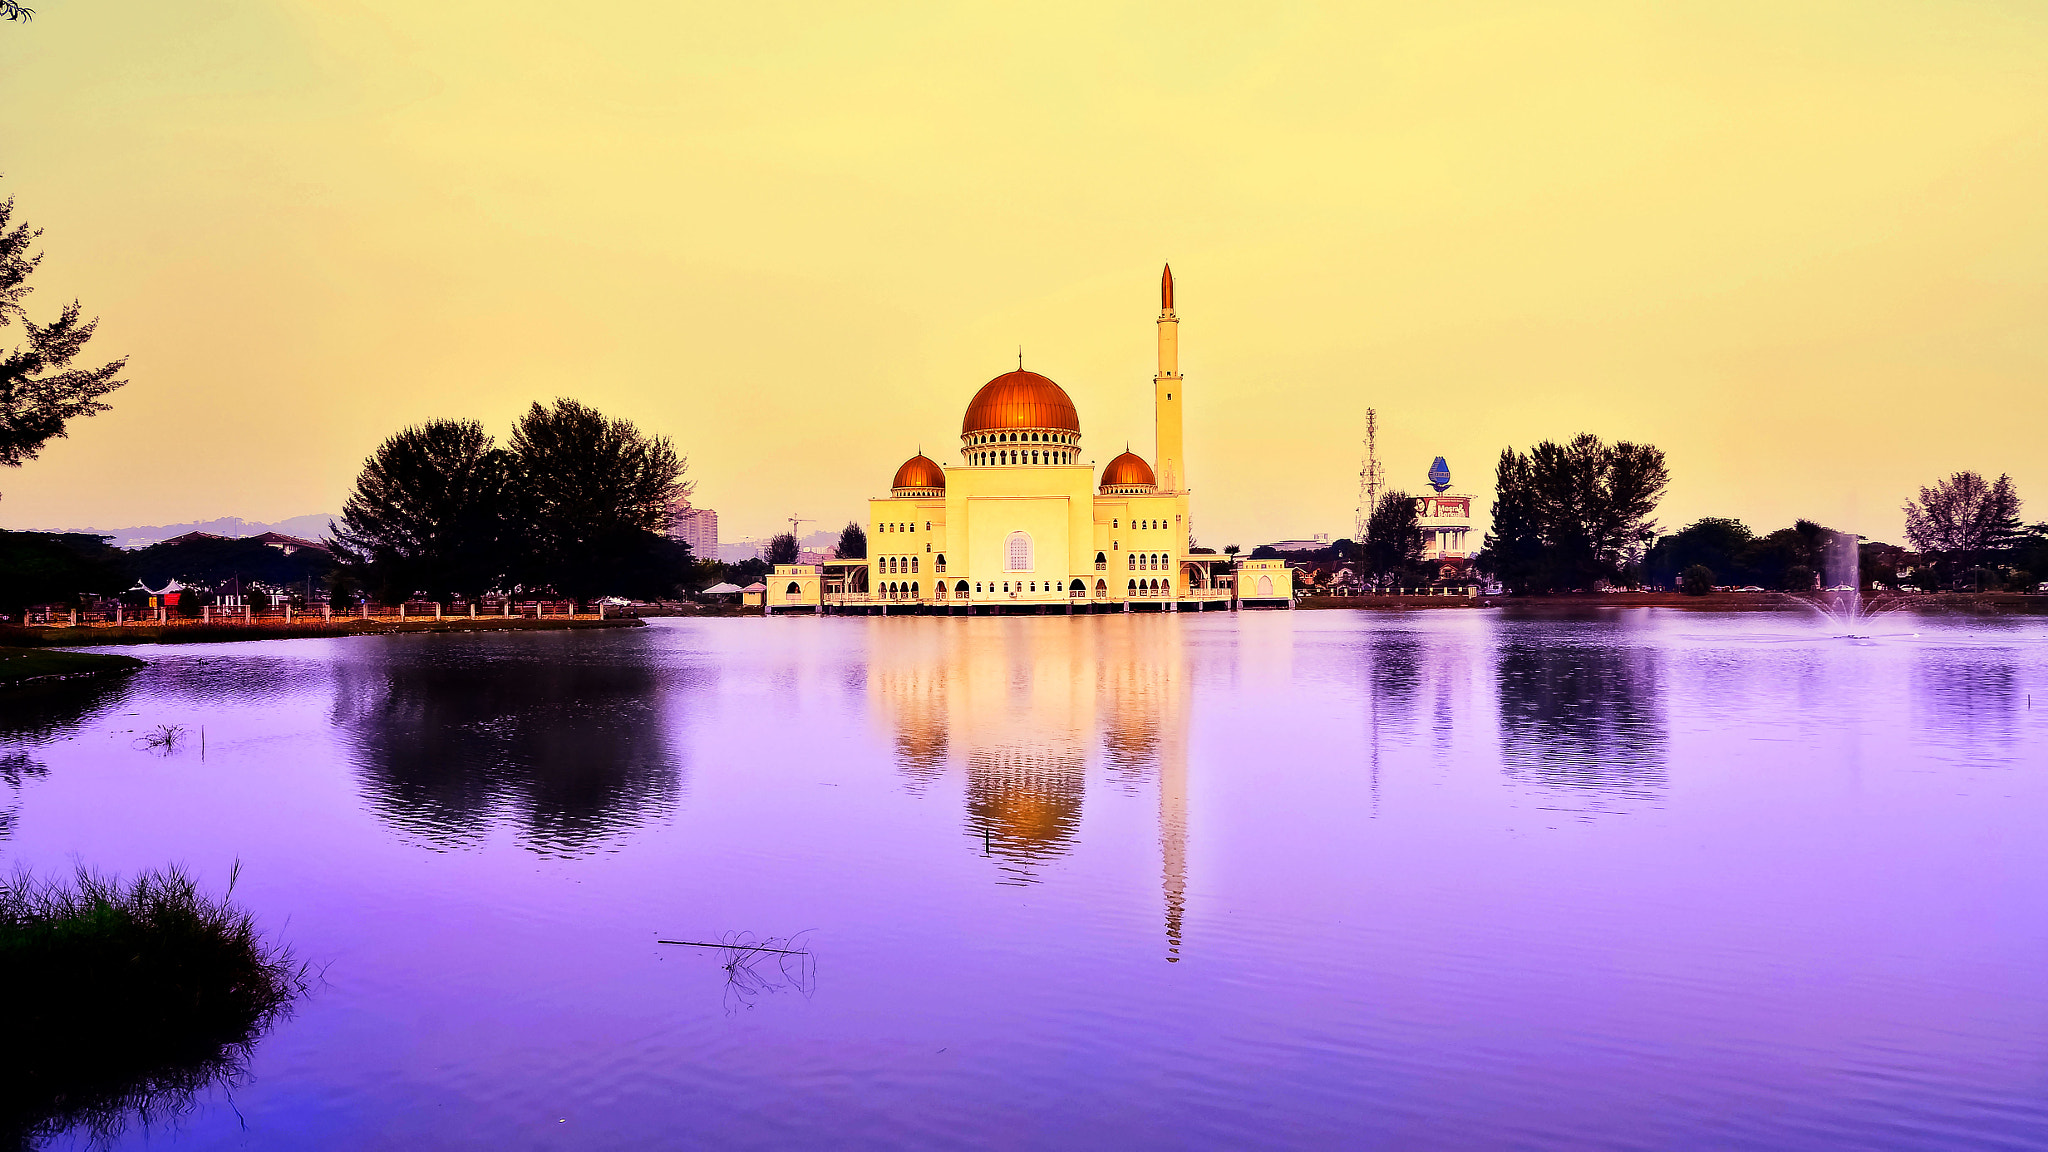 Photograph Floating Mosque by S e i n on 500px